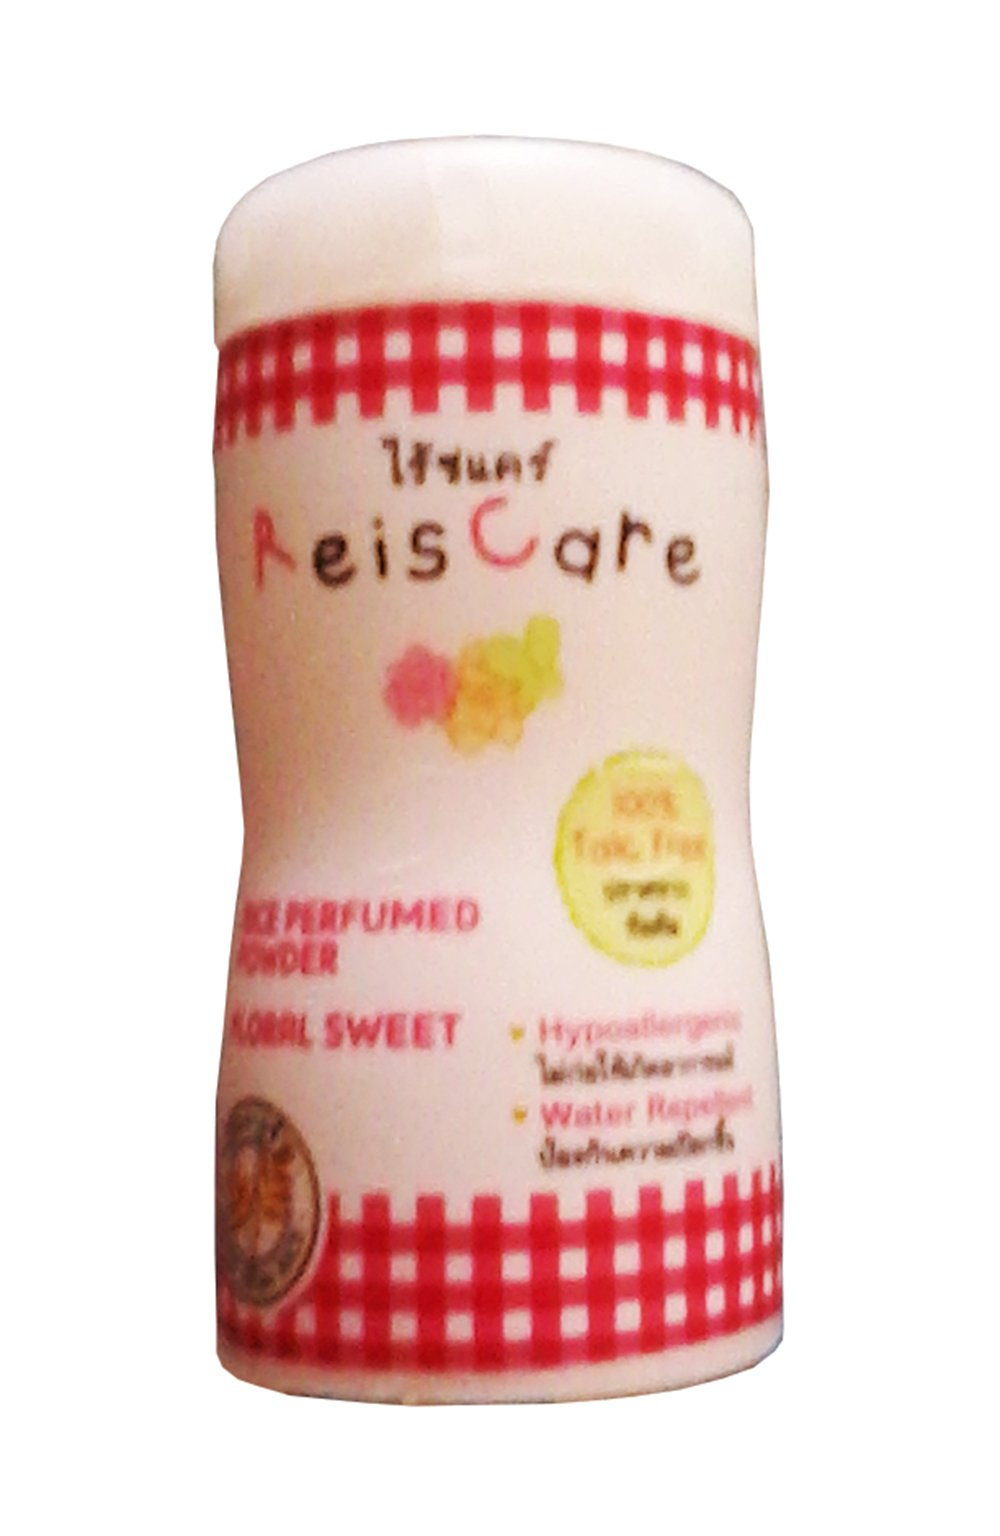 Set of 6 Reis Care Rice Perfumed Powder Floral Sweet 100 % Talc Free (Made From Rice) by Reis Care